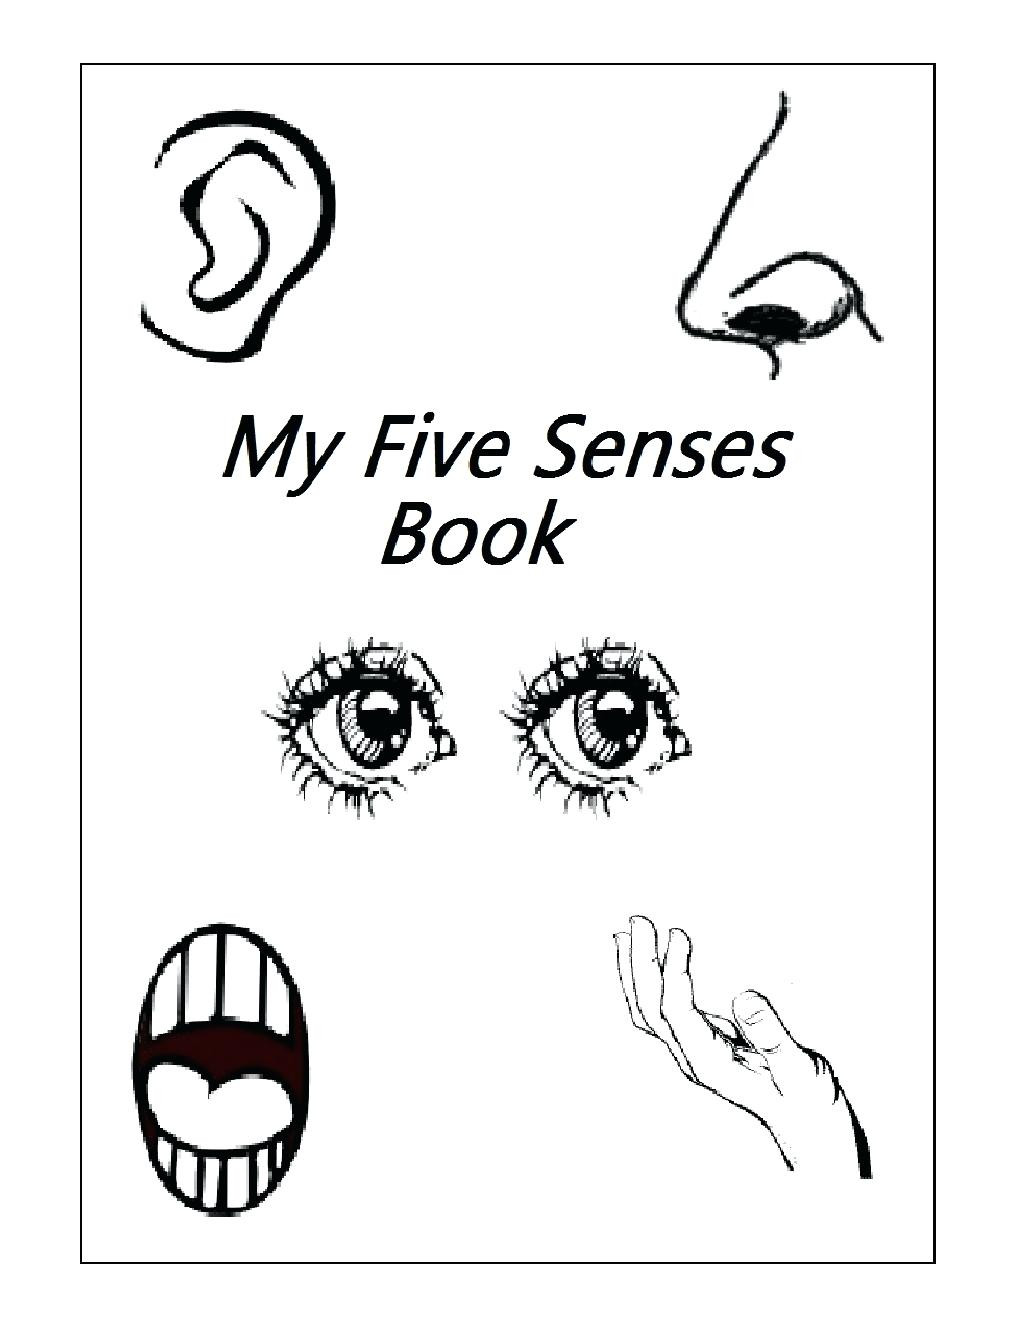 5 Senses Worksheet Preschool Five Senses Activities for Kindergarten Crafts Nose Headband